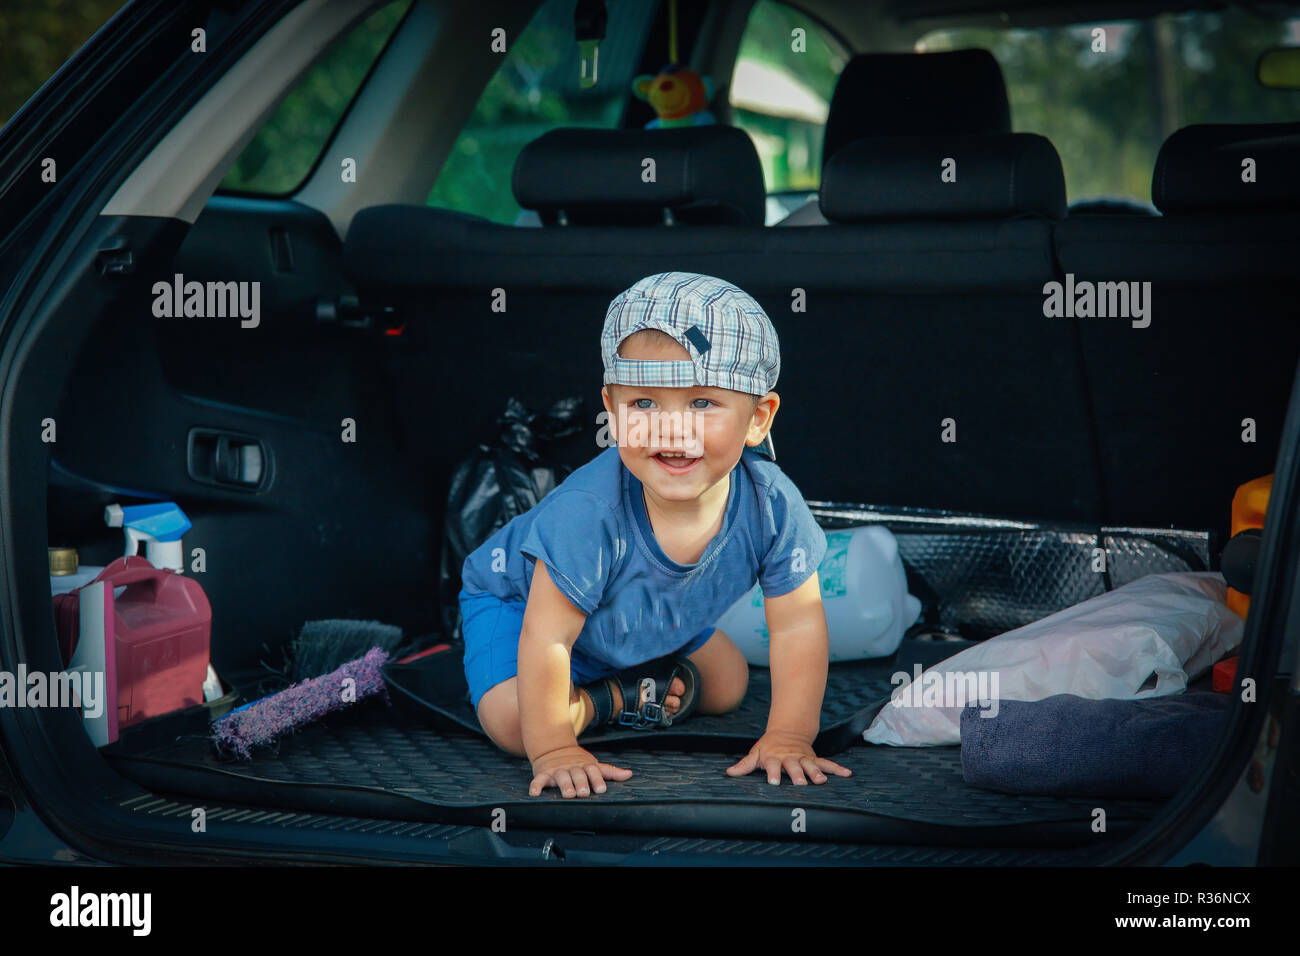 A small child sitting in the trunk of the car plays and laughs - Stock Image